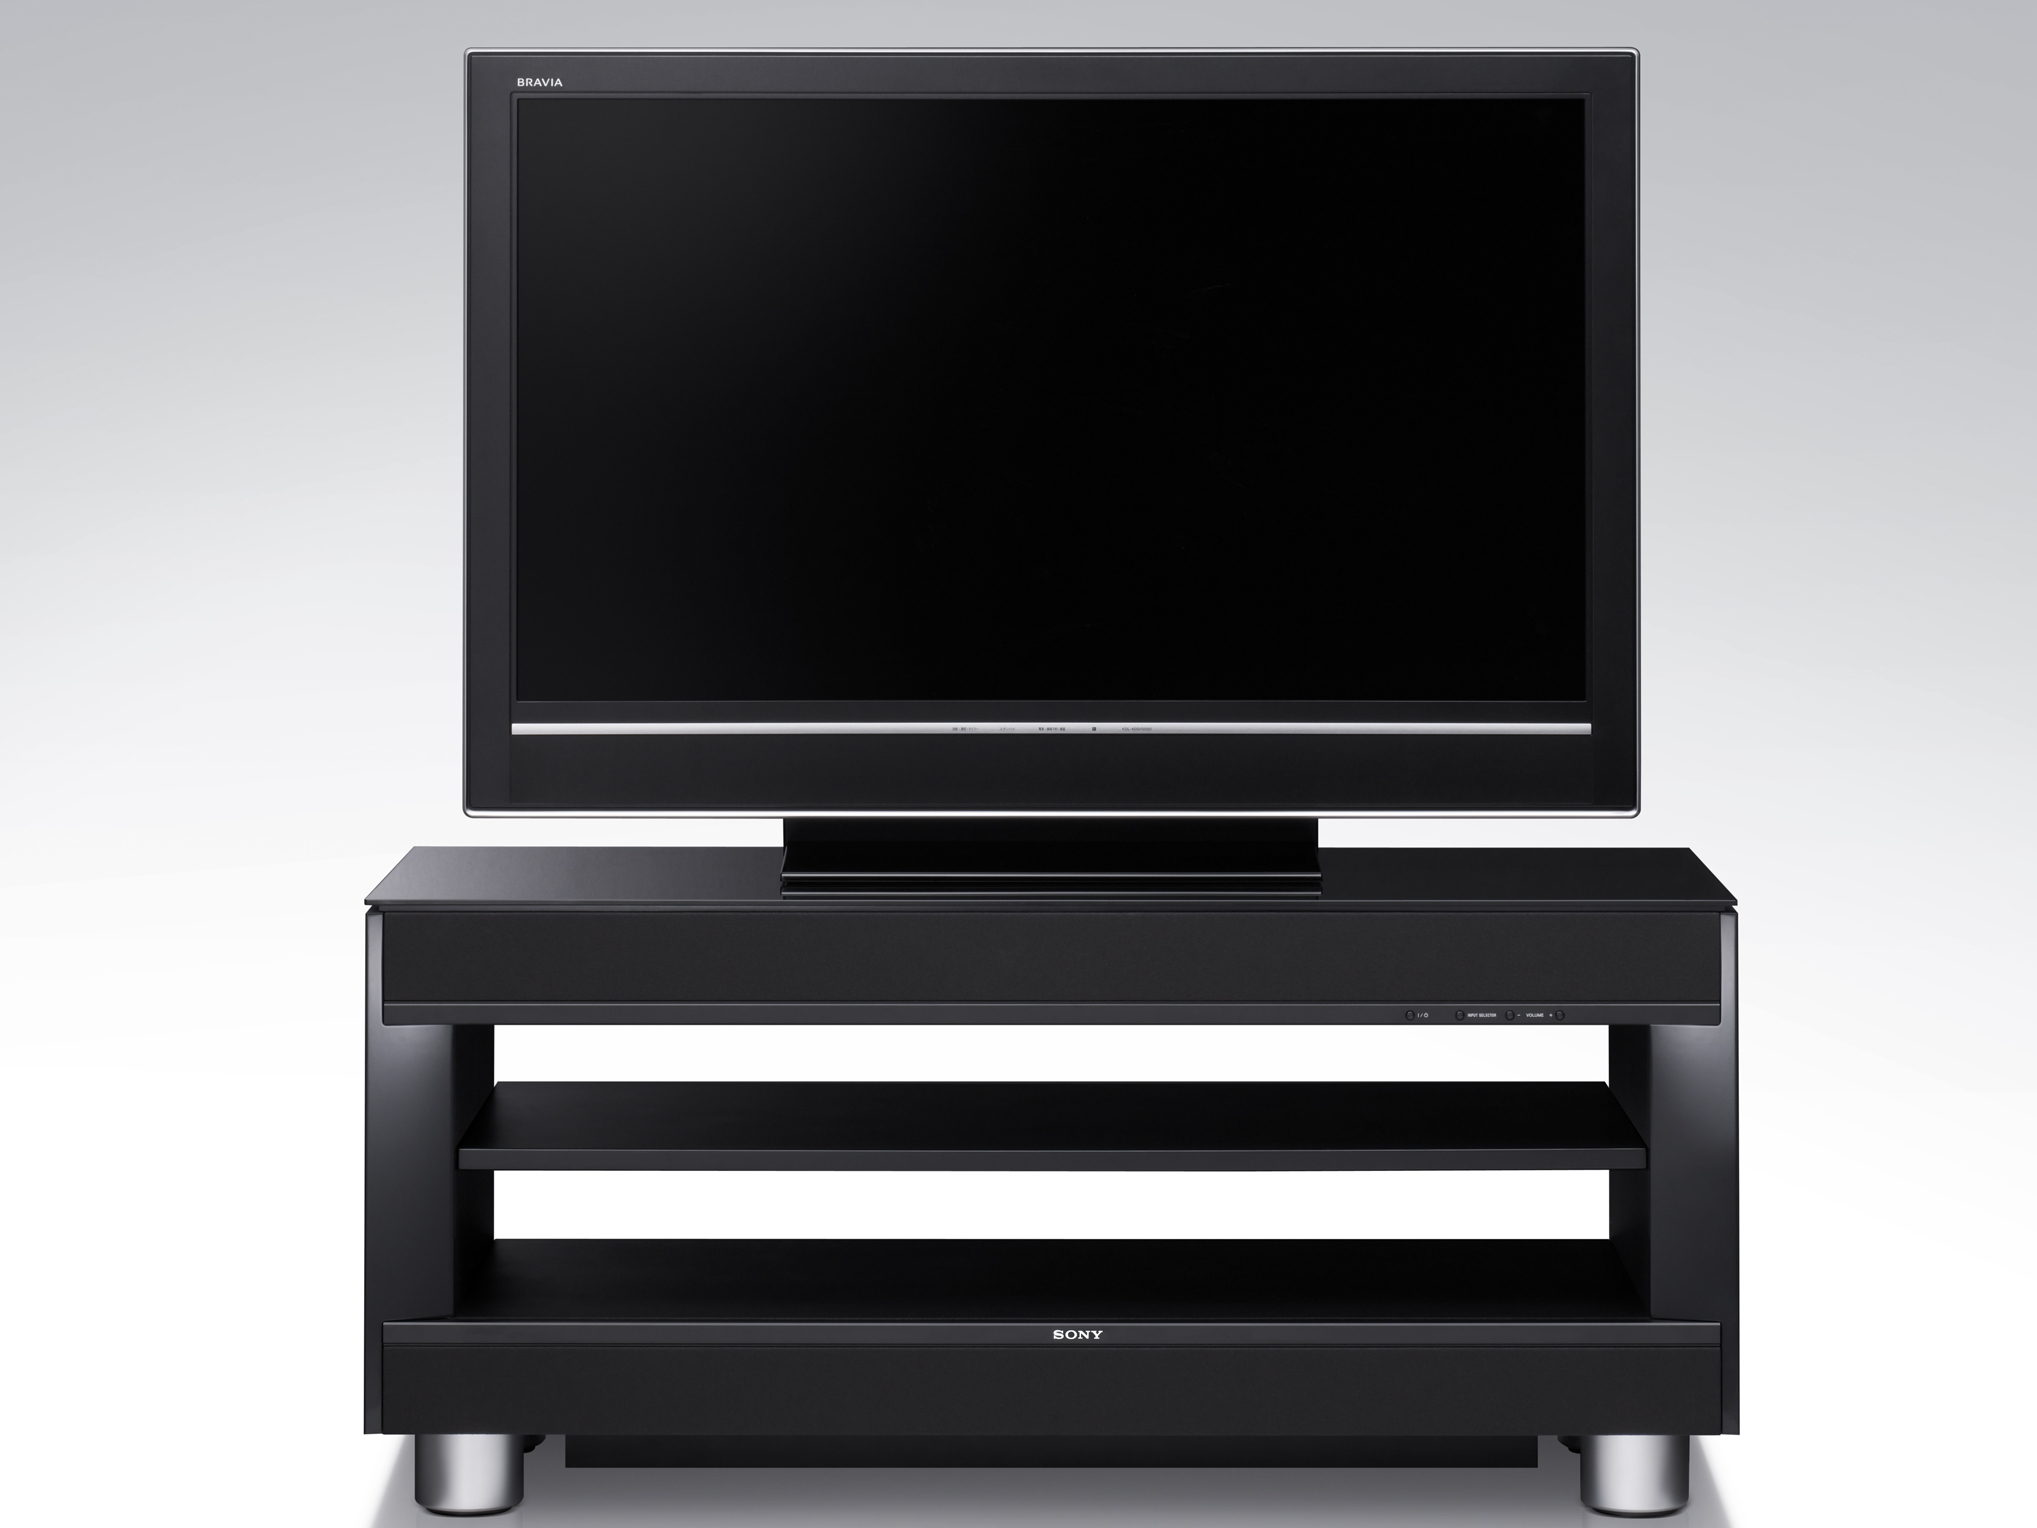 sony tv stand. sony tv stand